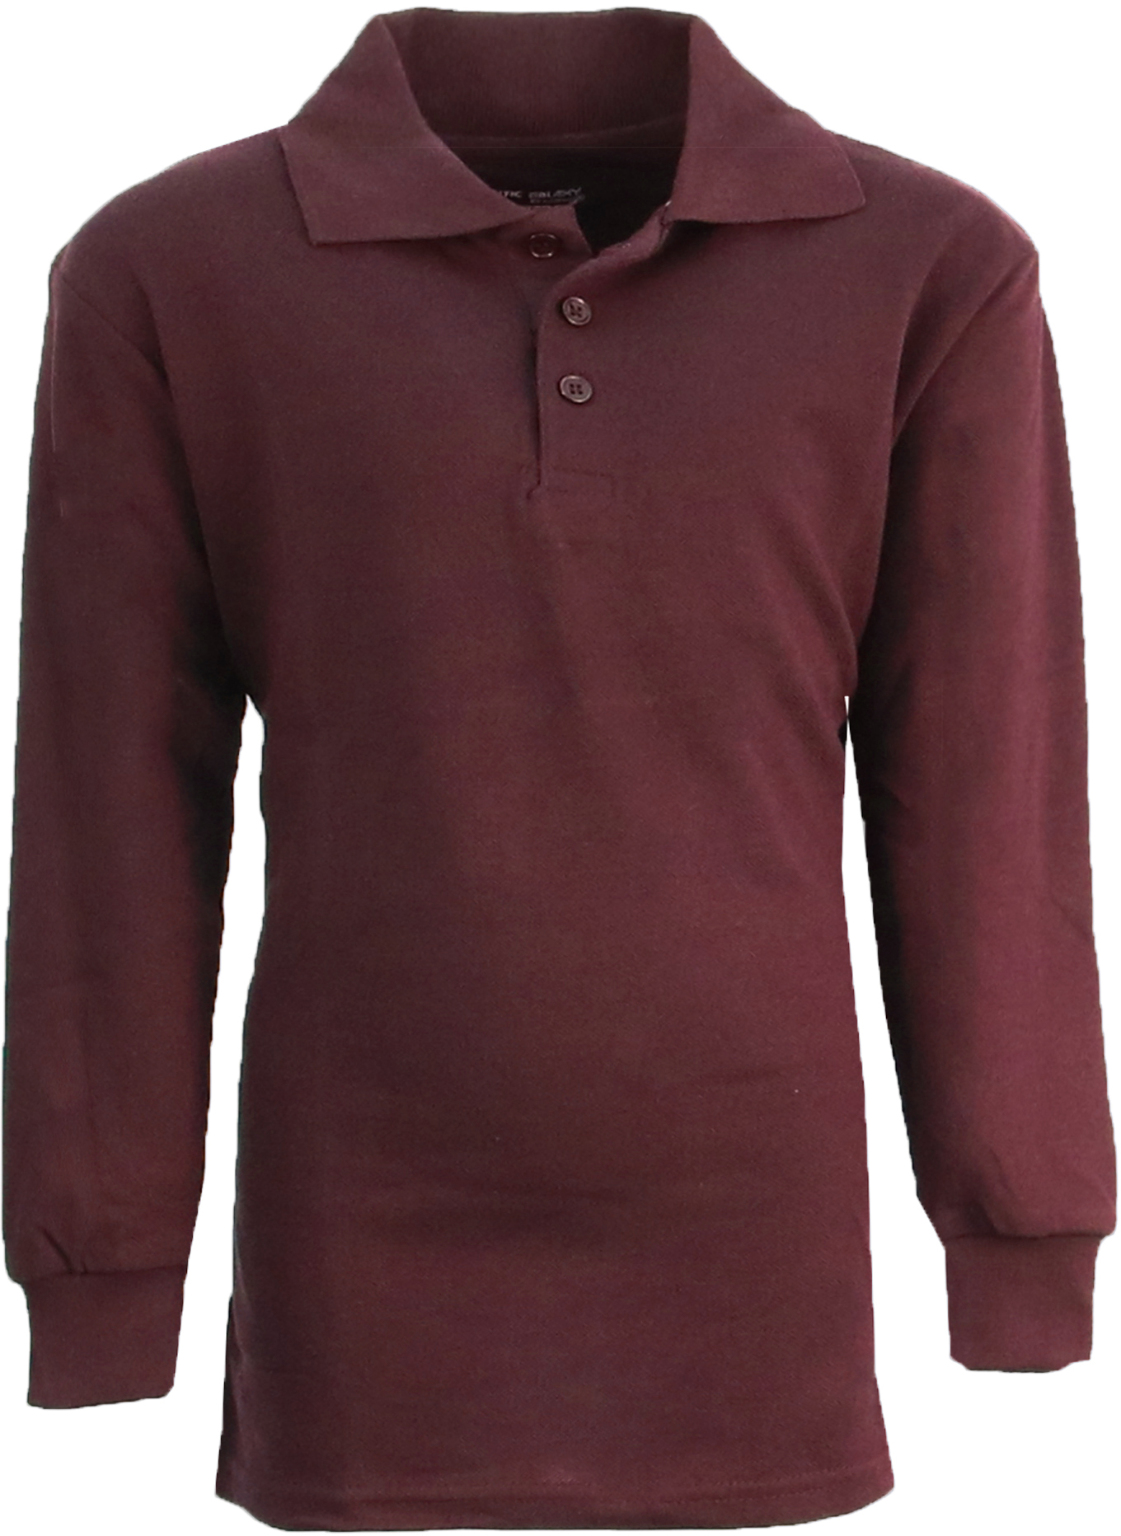 Wholesale boy 39 s burgundy long sleeve pique polo shirts Burgundy polo shirt boys